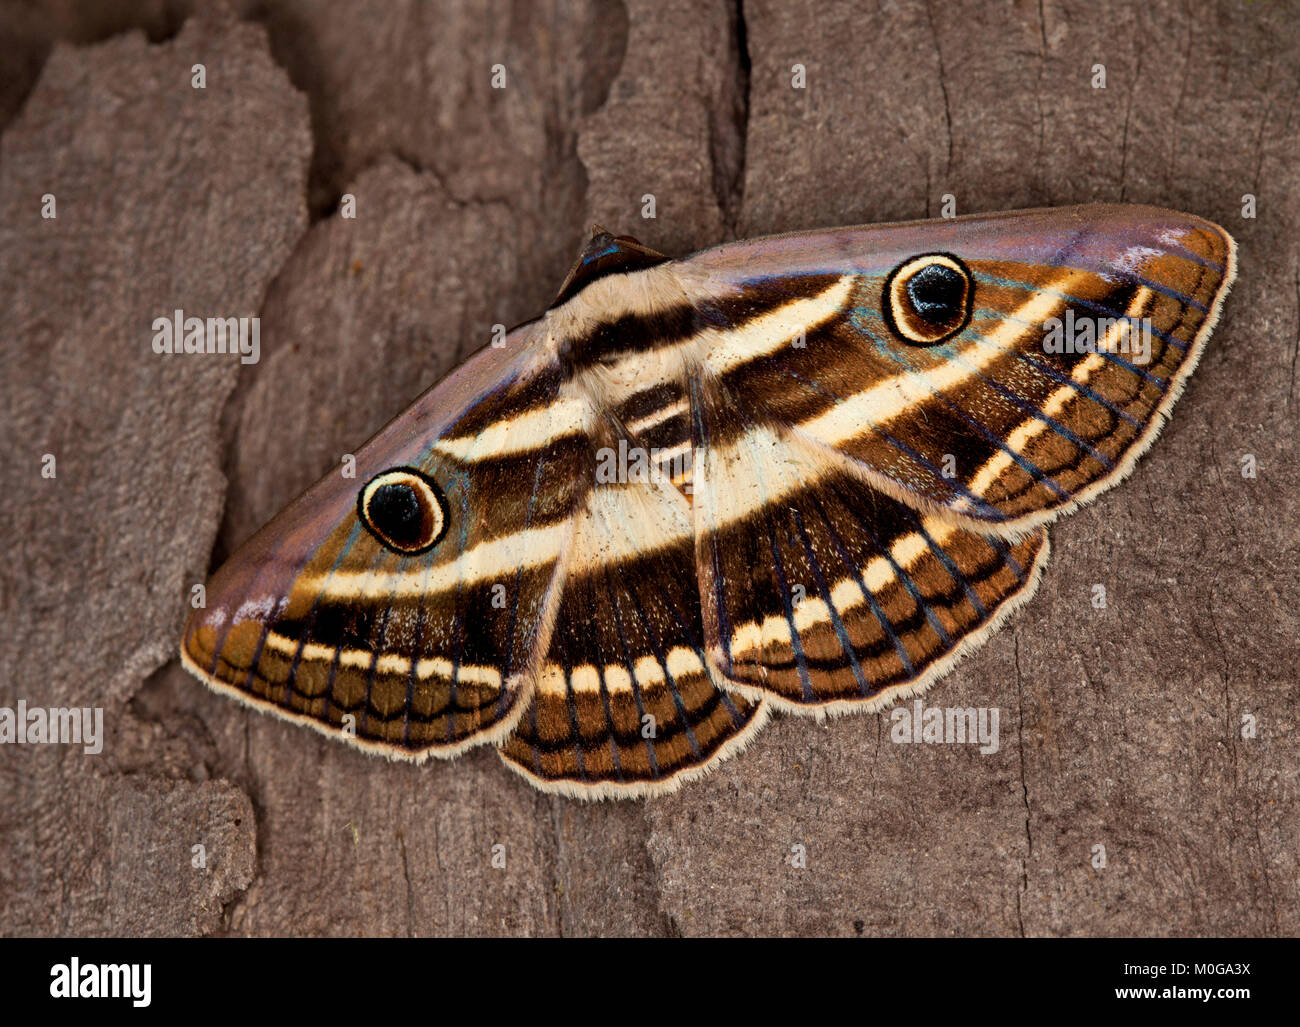 Australian white banded noctuid moth, Donuca orbigera, with wings camouflaged with 'eyes' and 'teeth', - Stock Image